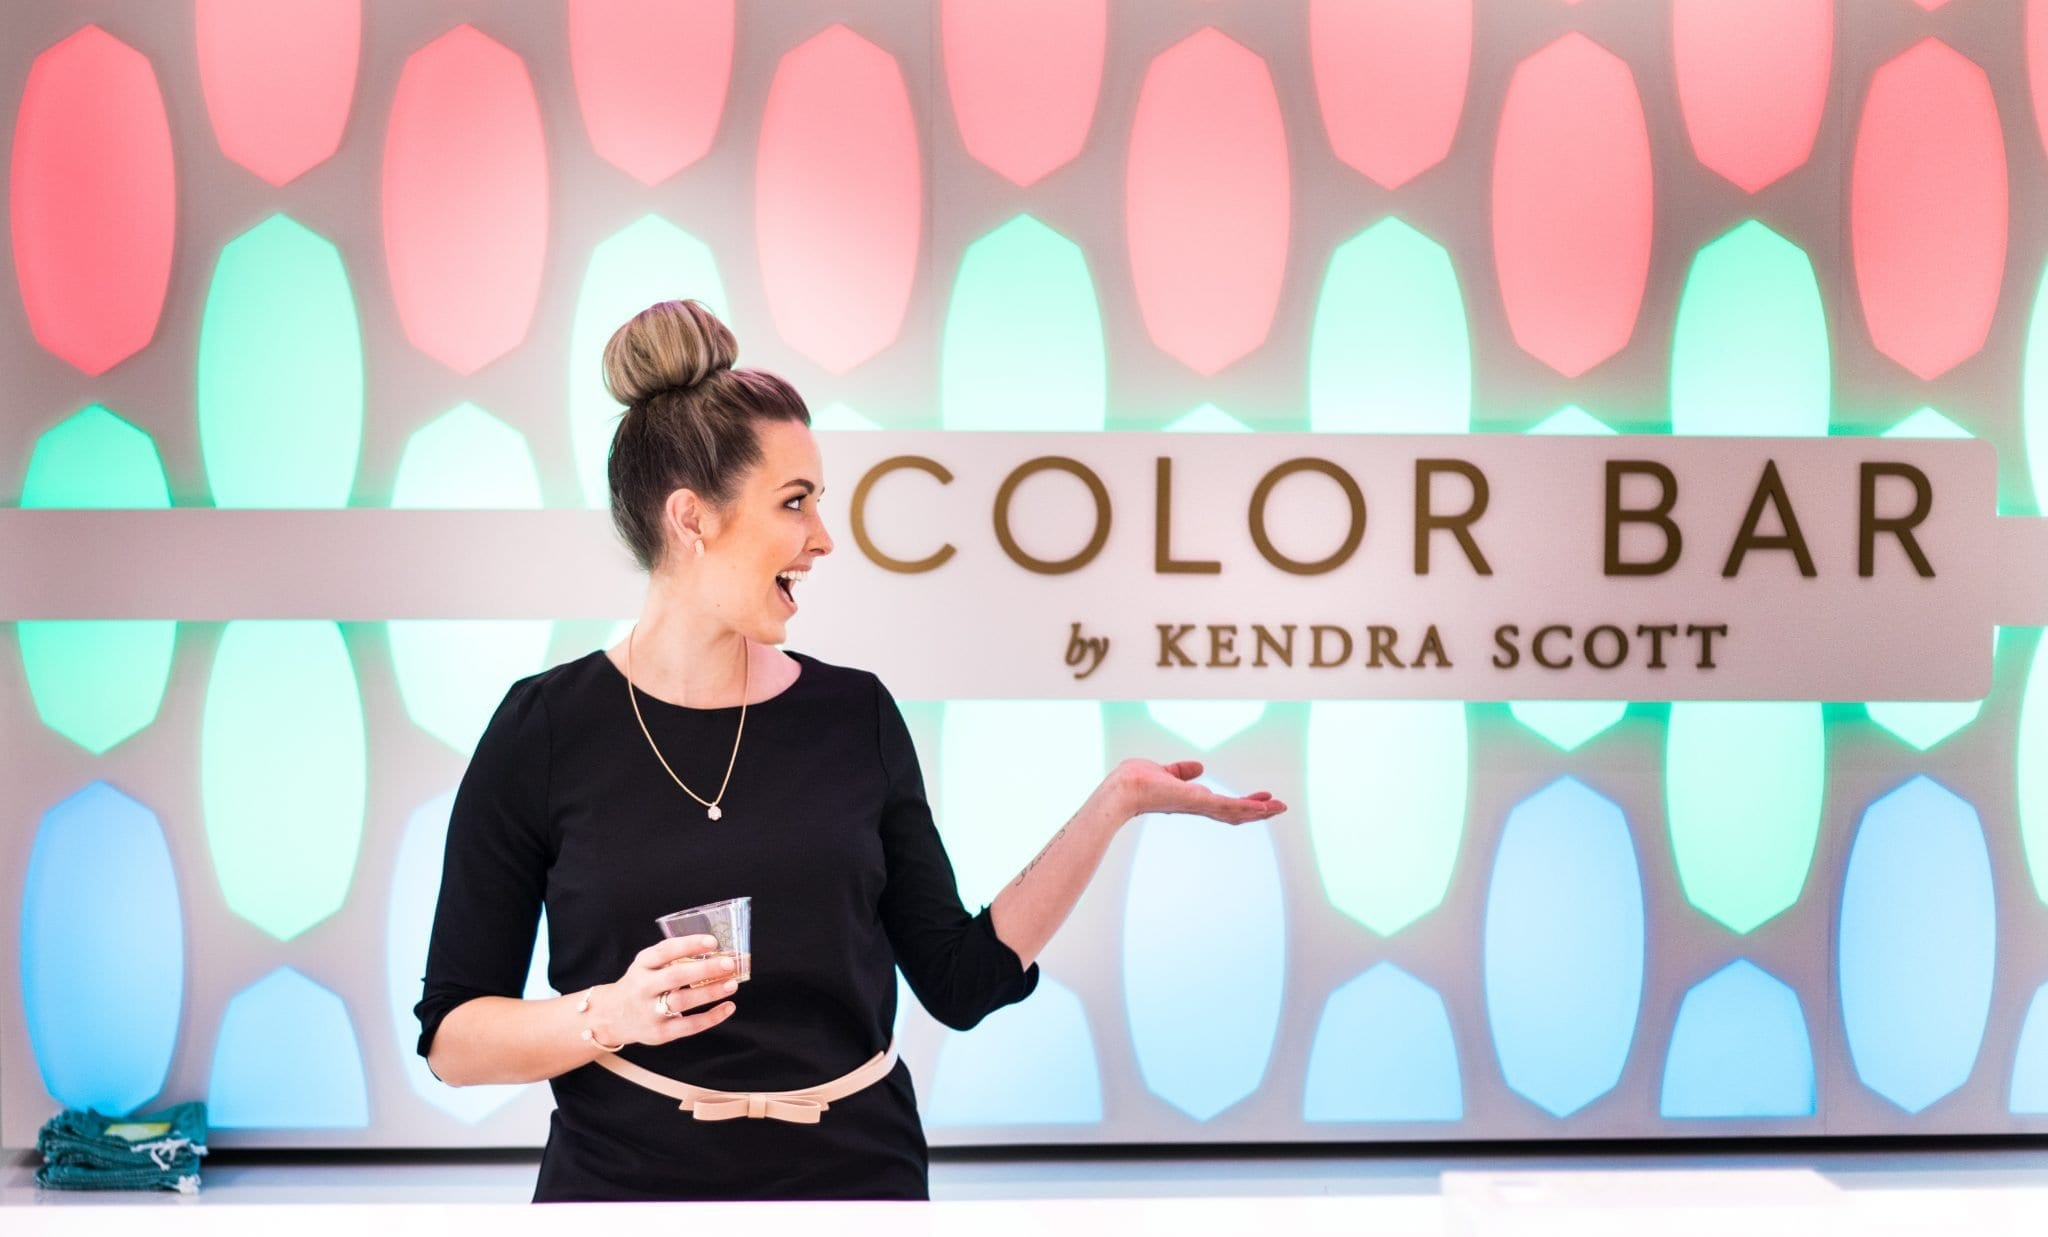 kendra scott earrings | scallop dress for fall | jewelry | Fashion show mall vegas | kendra scott vegas | TOBI scalloped dress | kendra scott necklace elisa